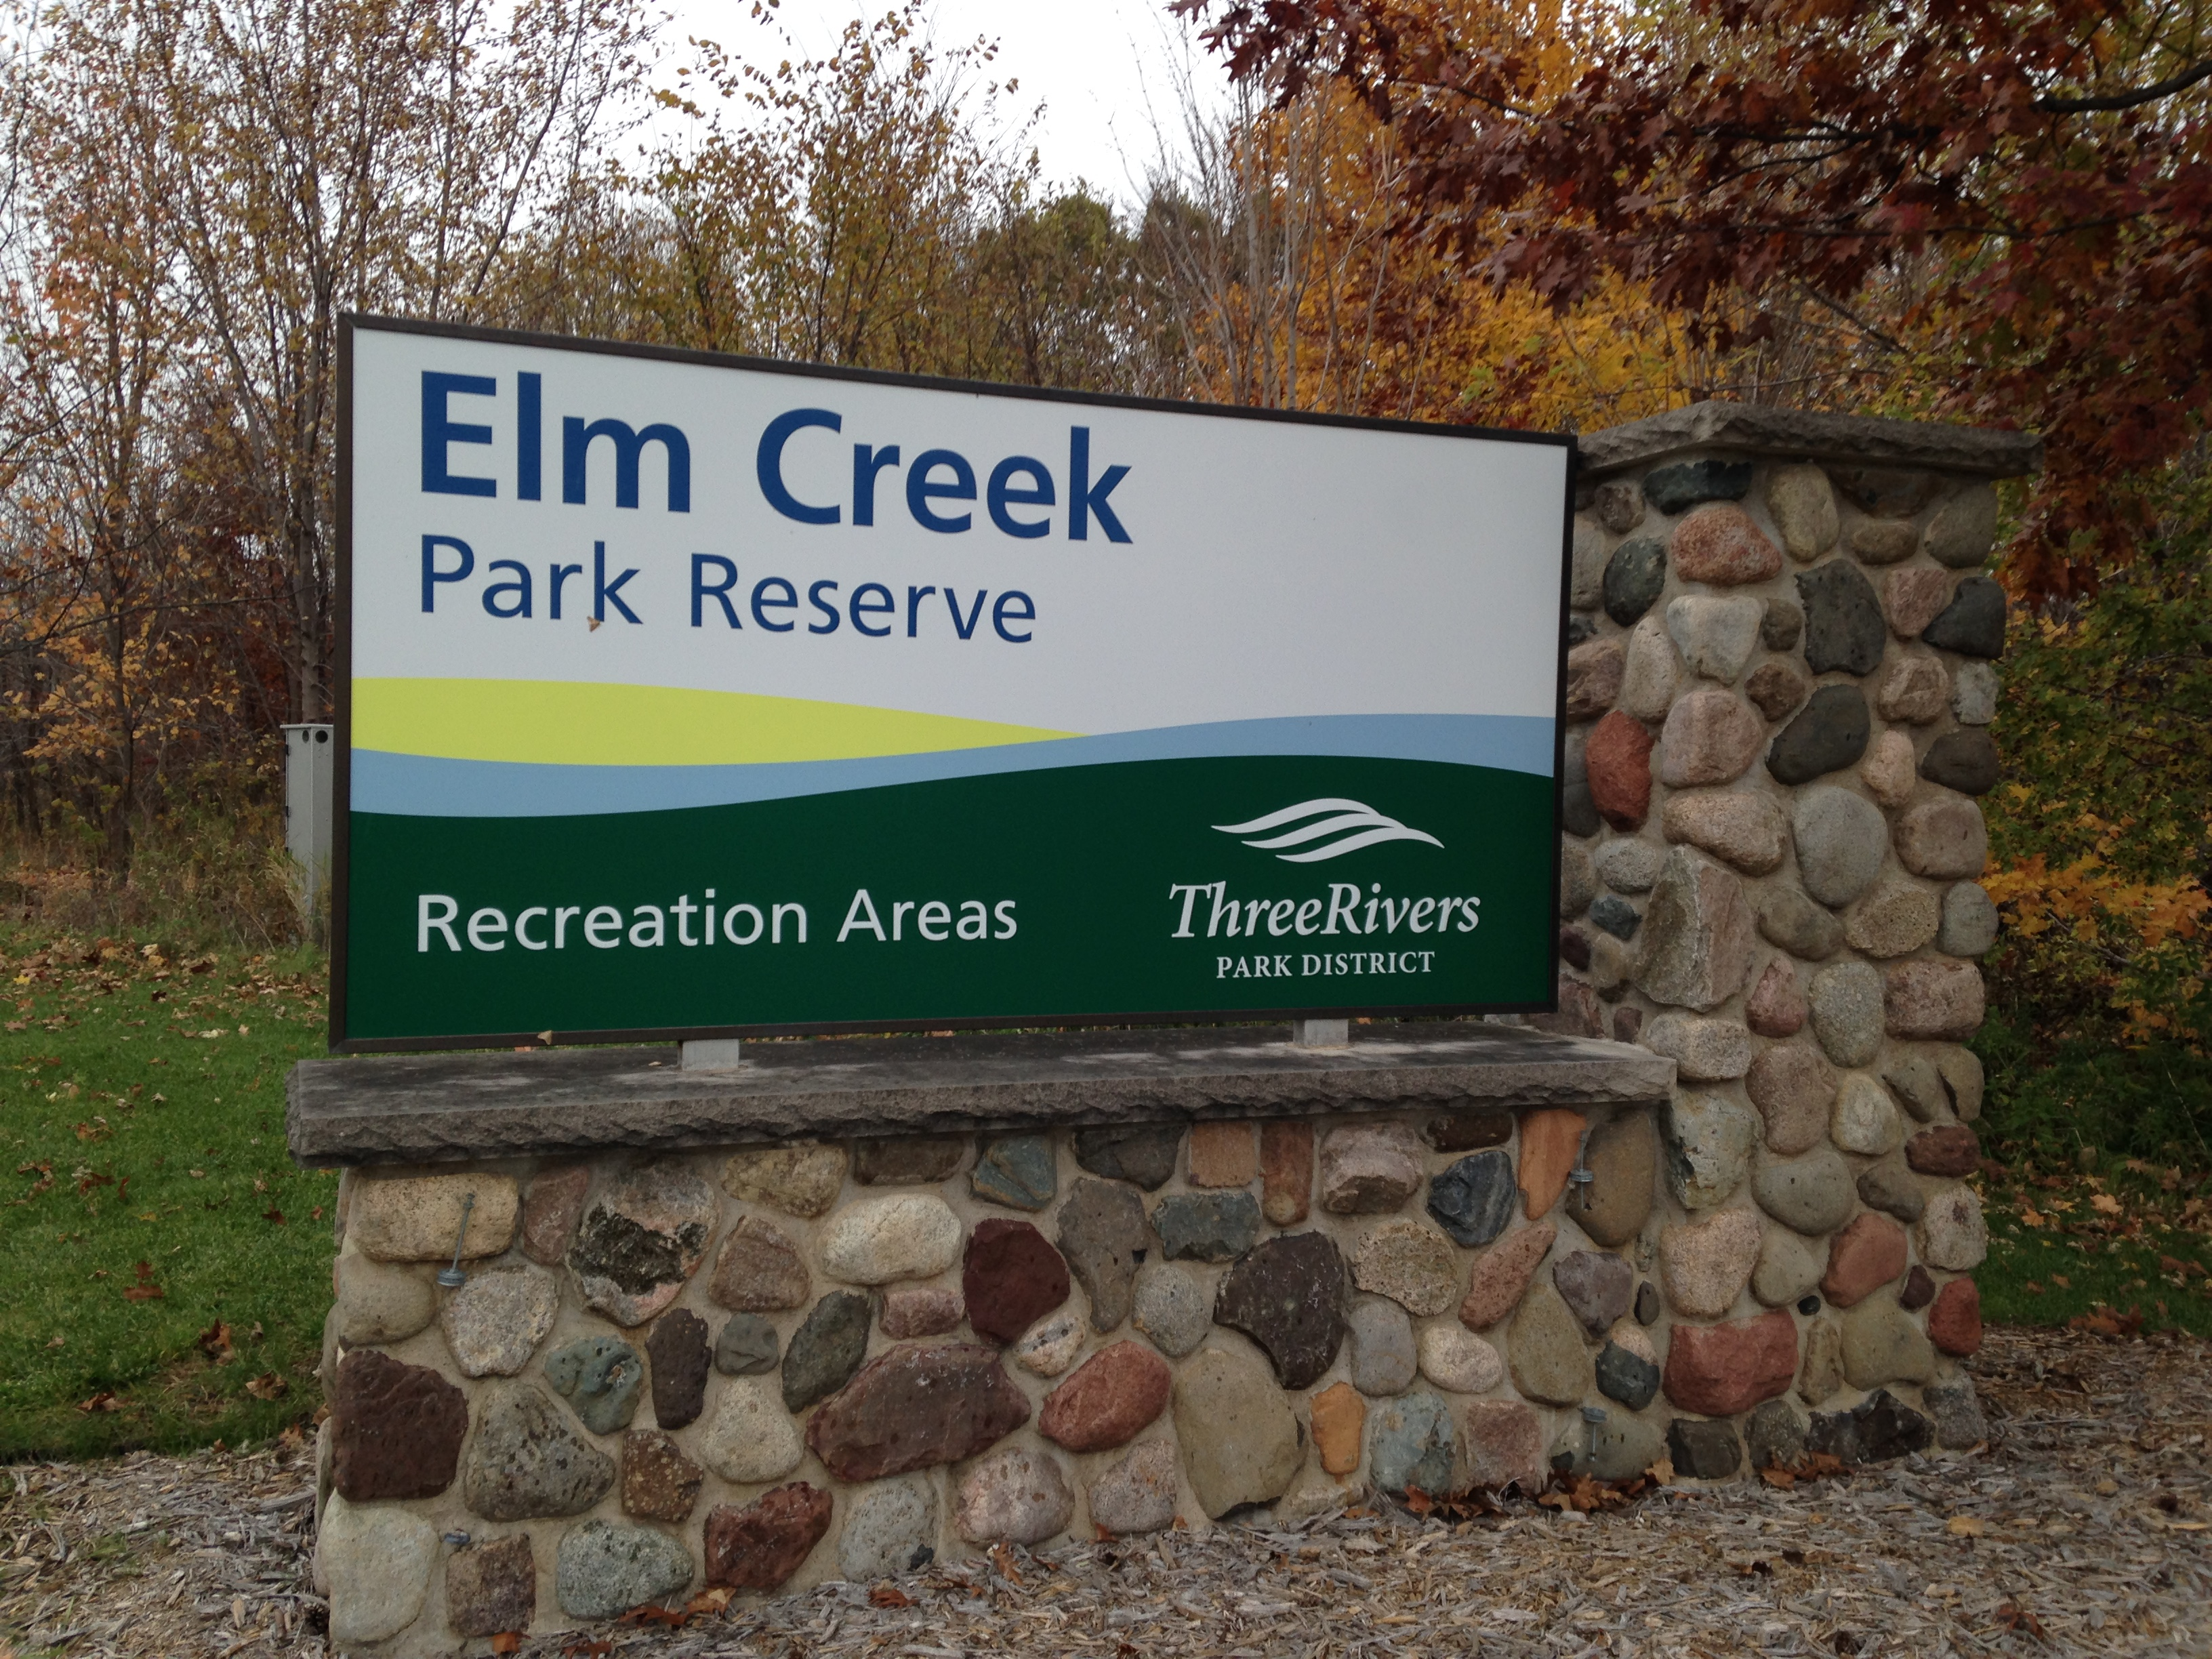 Elm 20creek